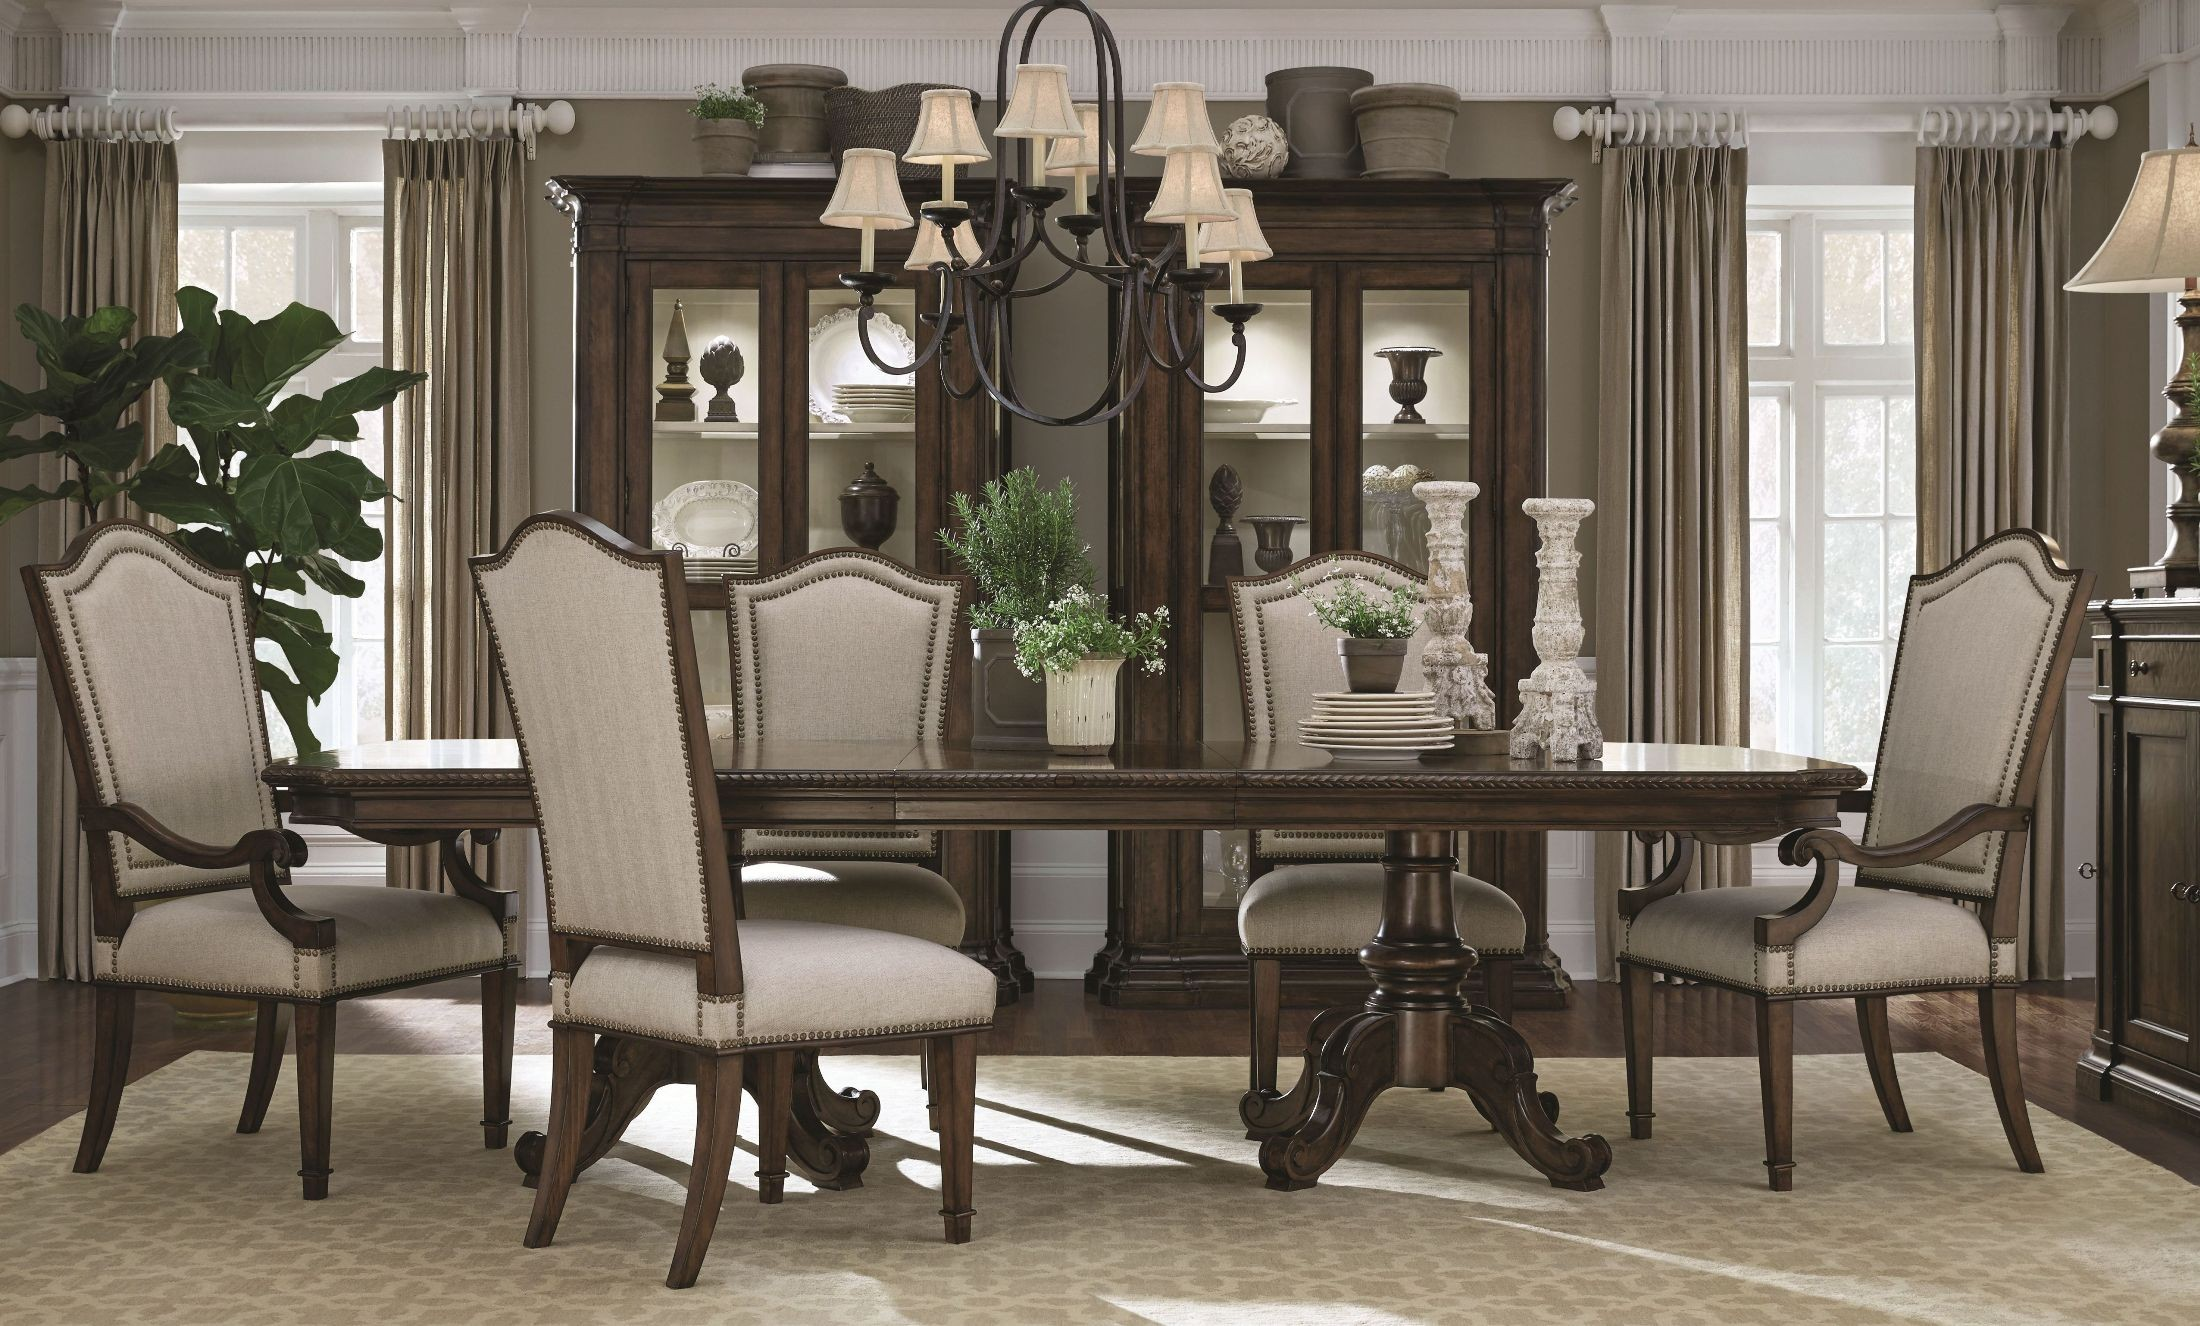 Chateaux walnut double pedestal extendable dining room set for Double t dining plan